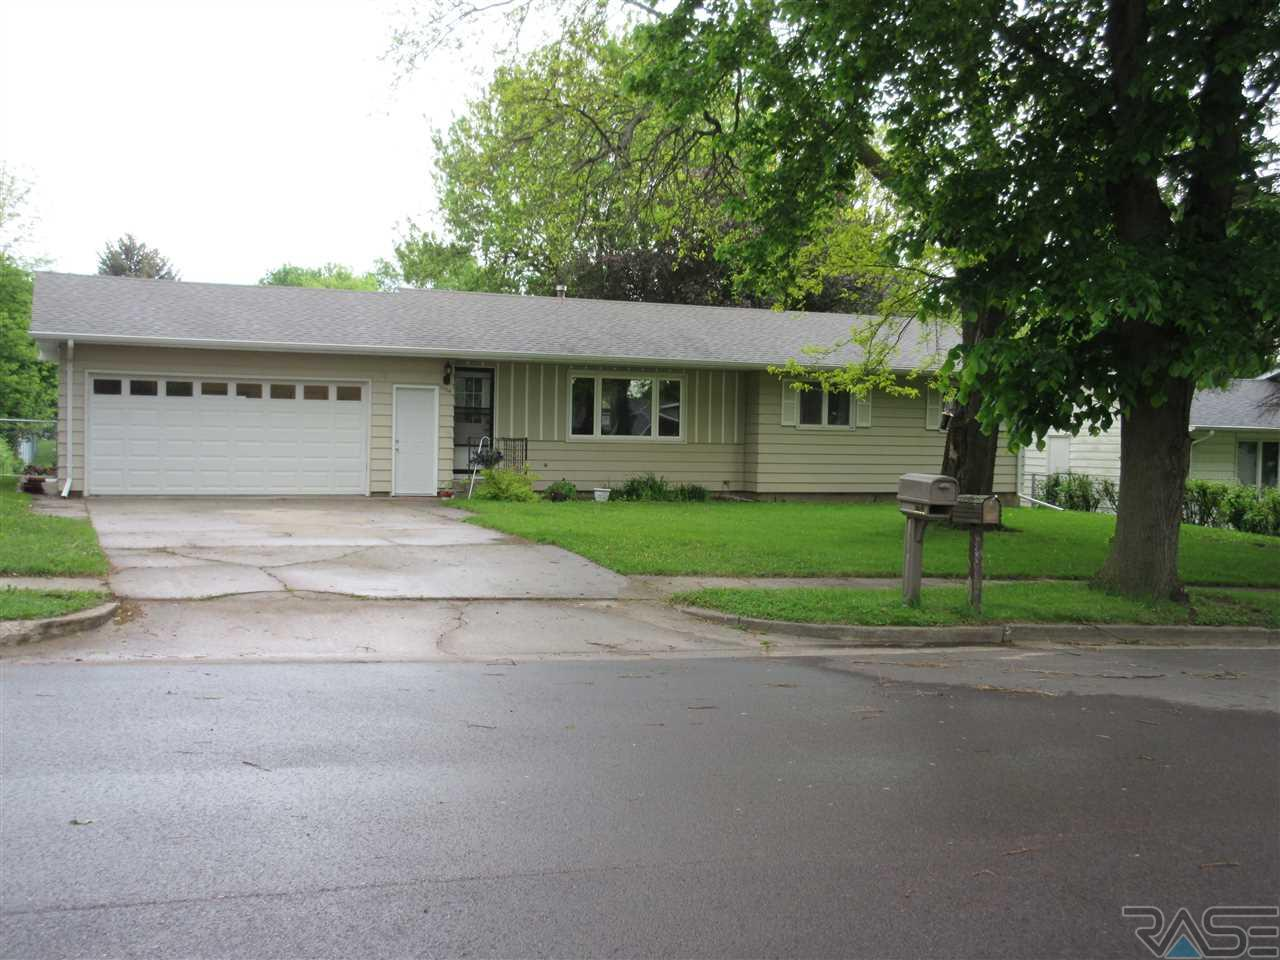 1204 Thresher Dr, Dell Rapids, SD 57022